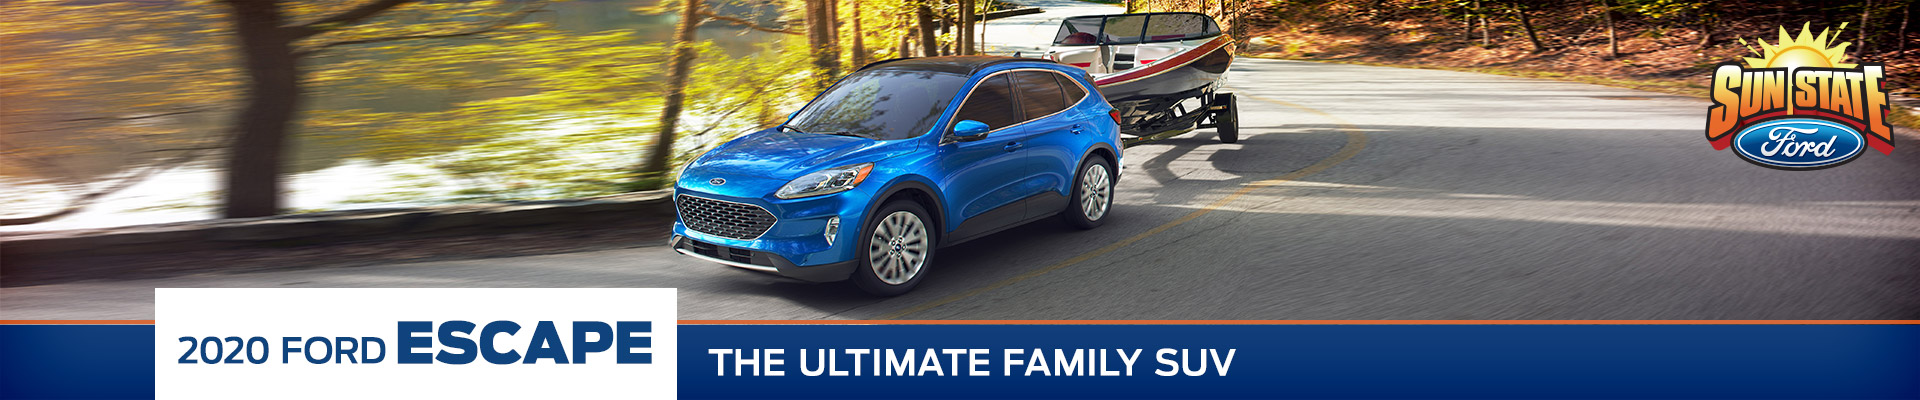 Family-friendly 2020 Ford Escape - Sun State Ford - Orlando, FL